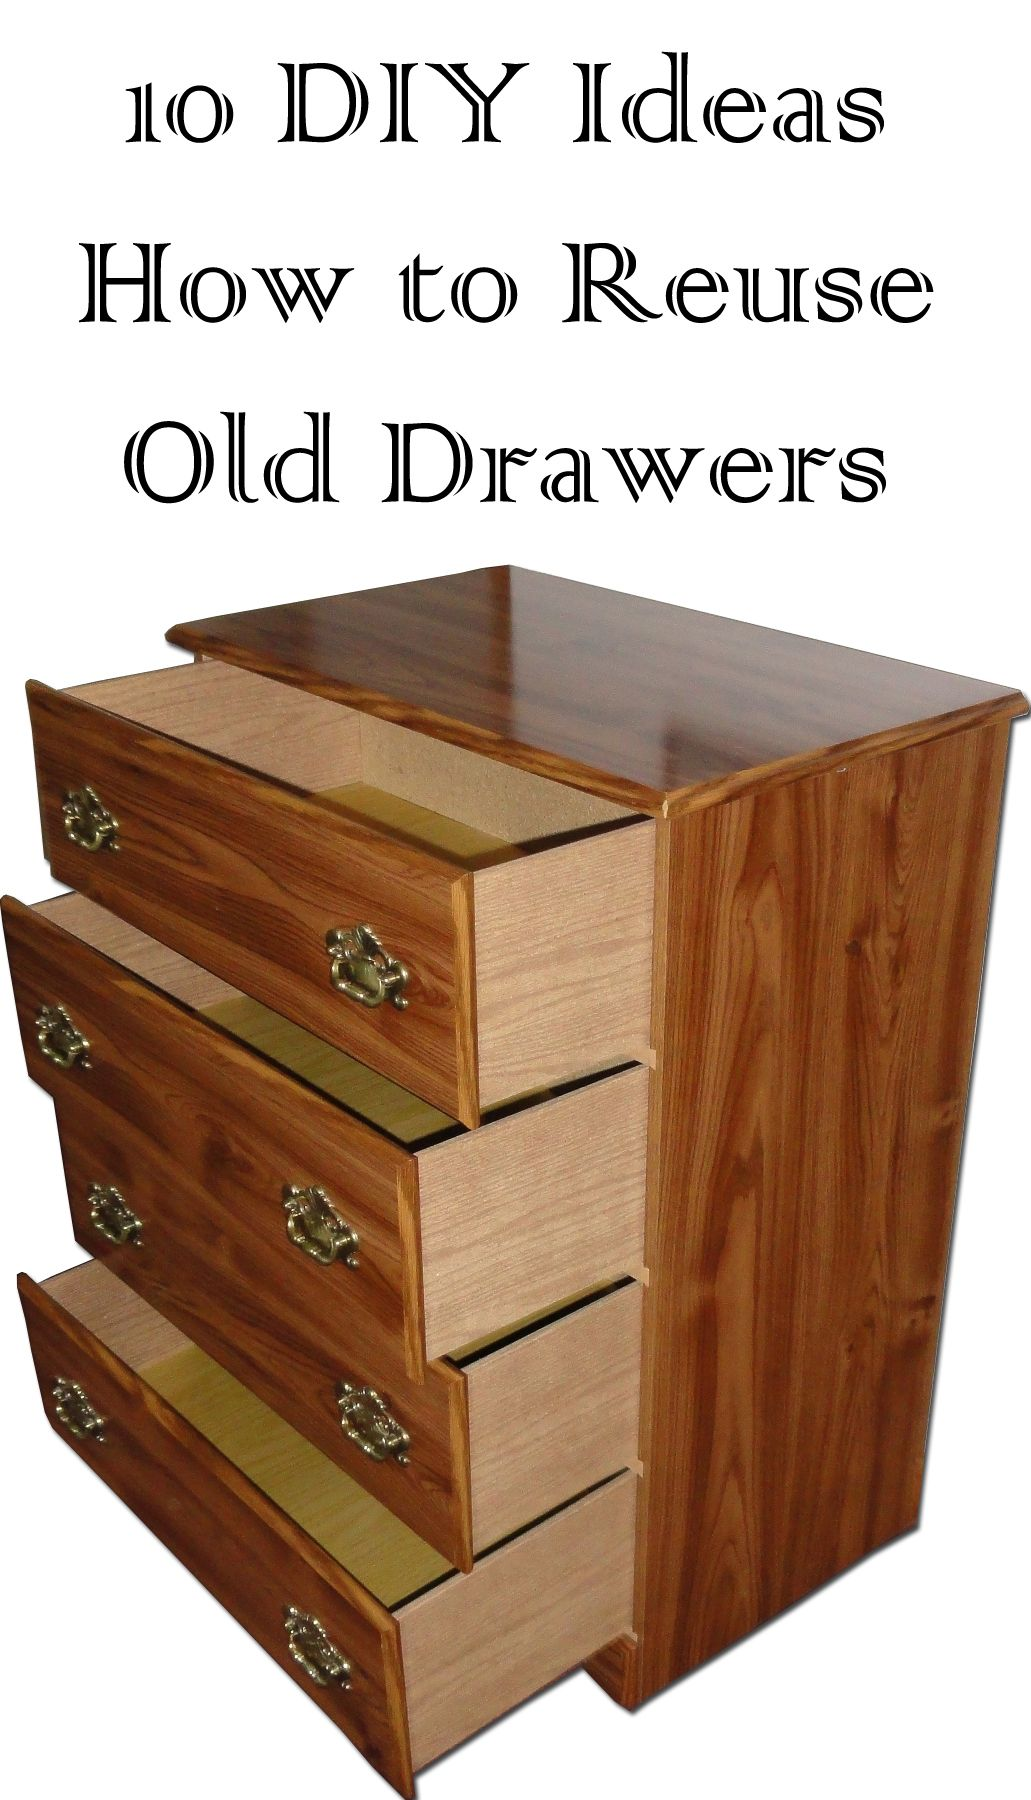 15 Smart Ways to Reuse Old Drawers Old dresser drawers